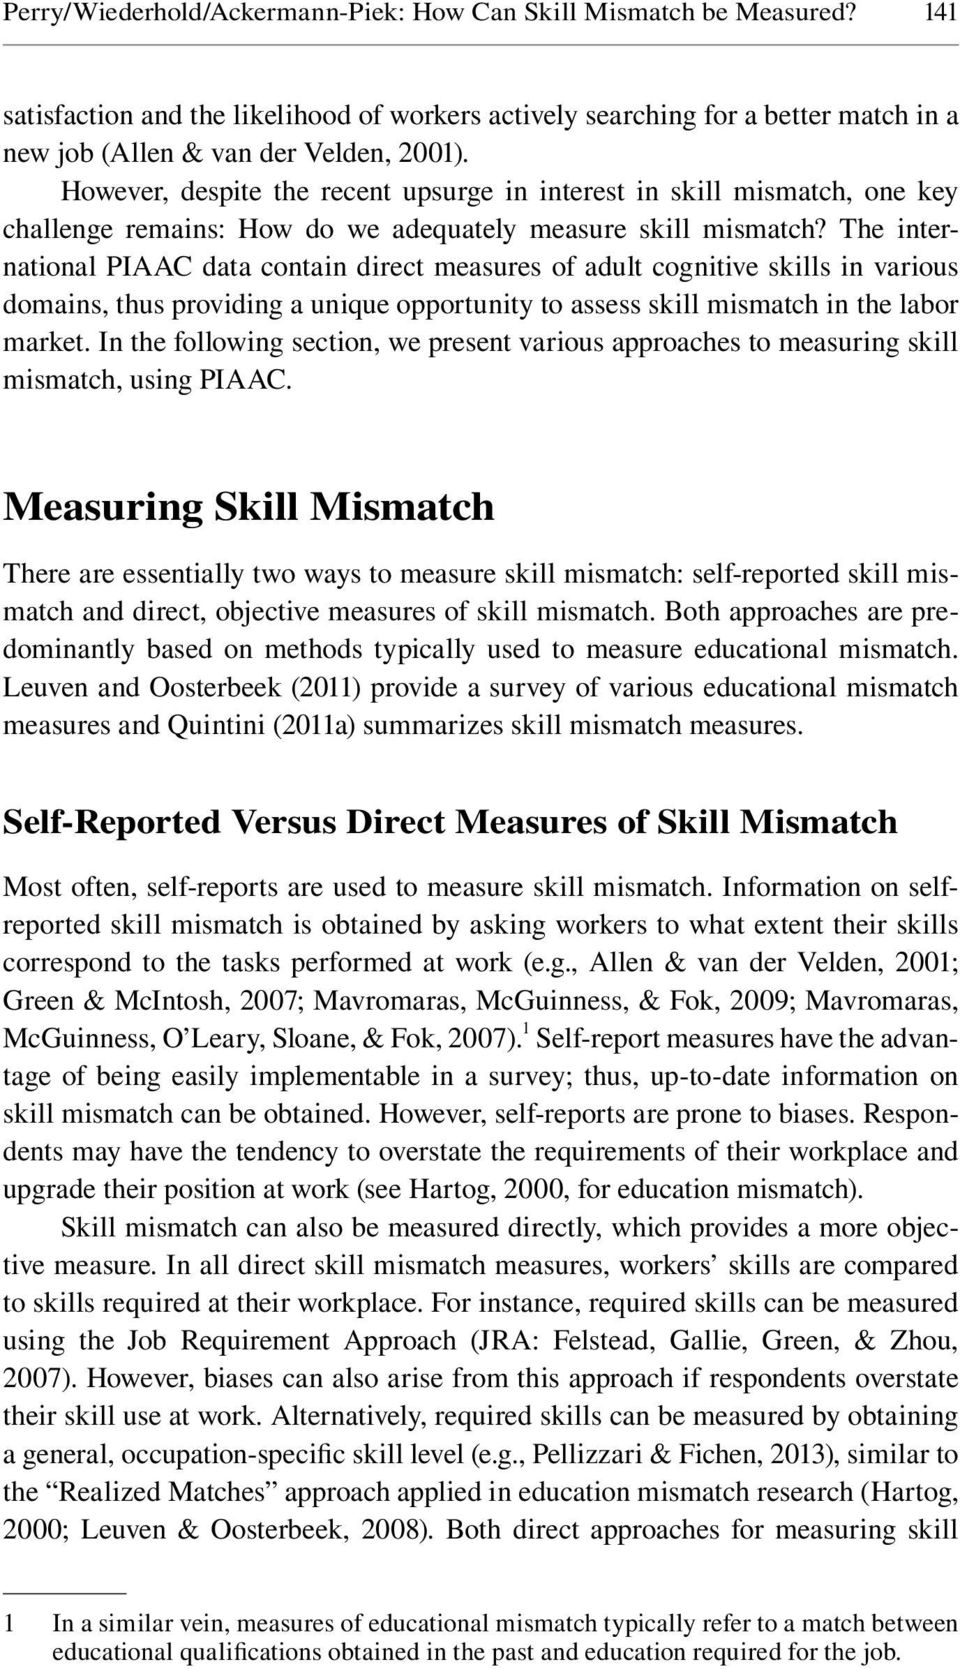 The international PIAAC data contain direct measures of adult cognitive skills in various domains, thus providing a unique opportunity to assess skill mismatch in the labor market.